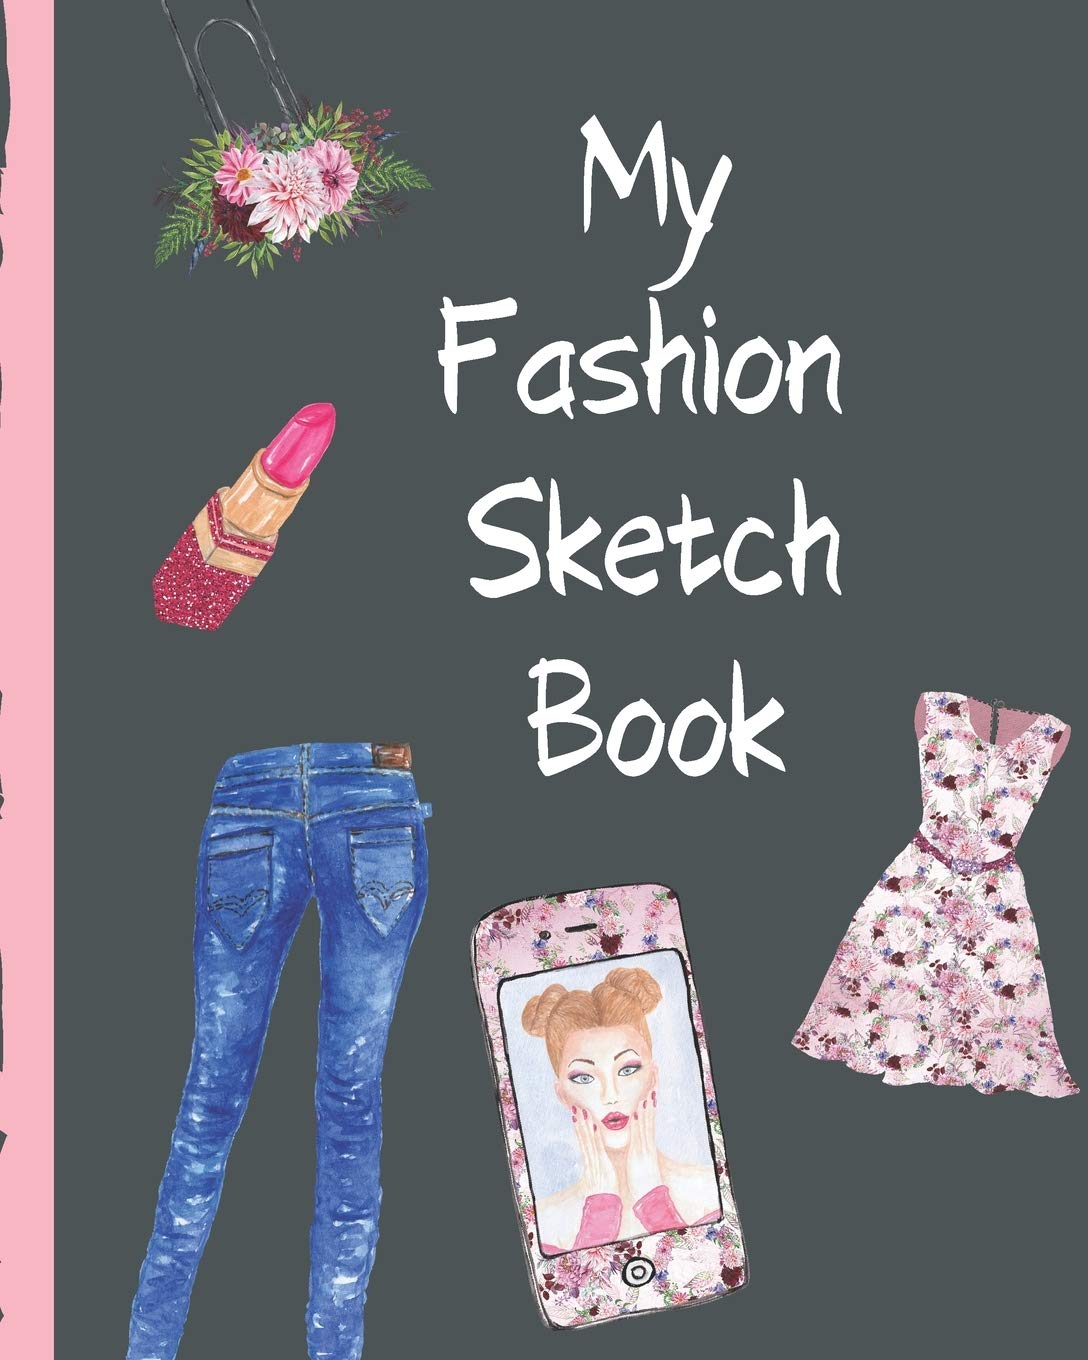 Buy My Fashion Sketch Book Budding Fashion Designer Journal Fashion Sketchbook Female Figure Template Design Styles Build Your Hot Ticket Portfolio Fashion Enthusiasts Buying And Merchandising Book